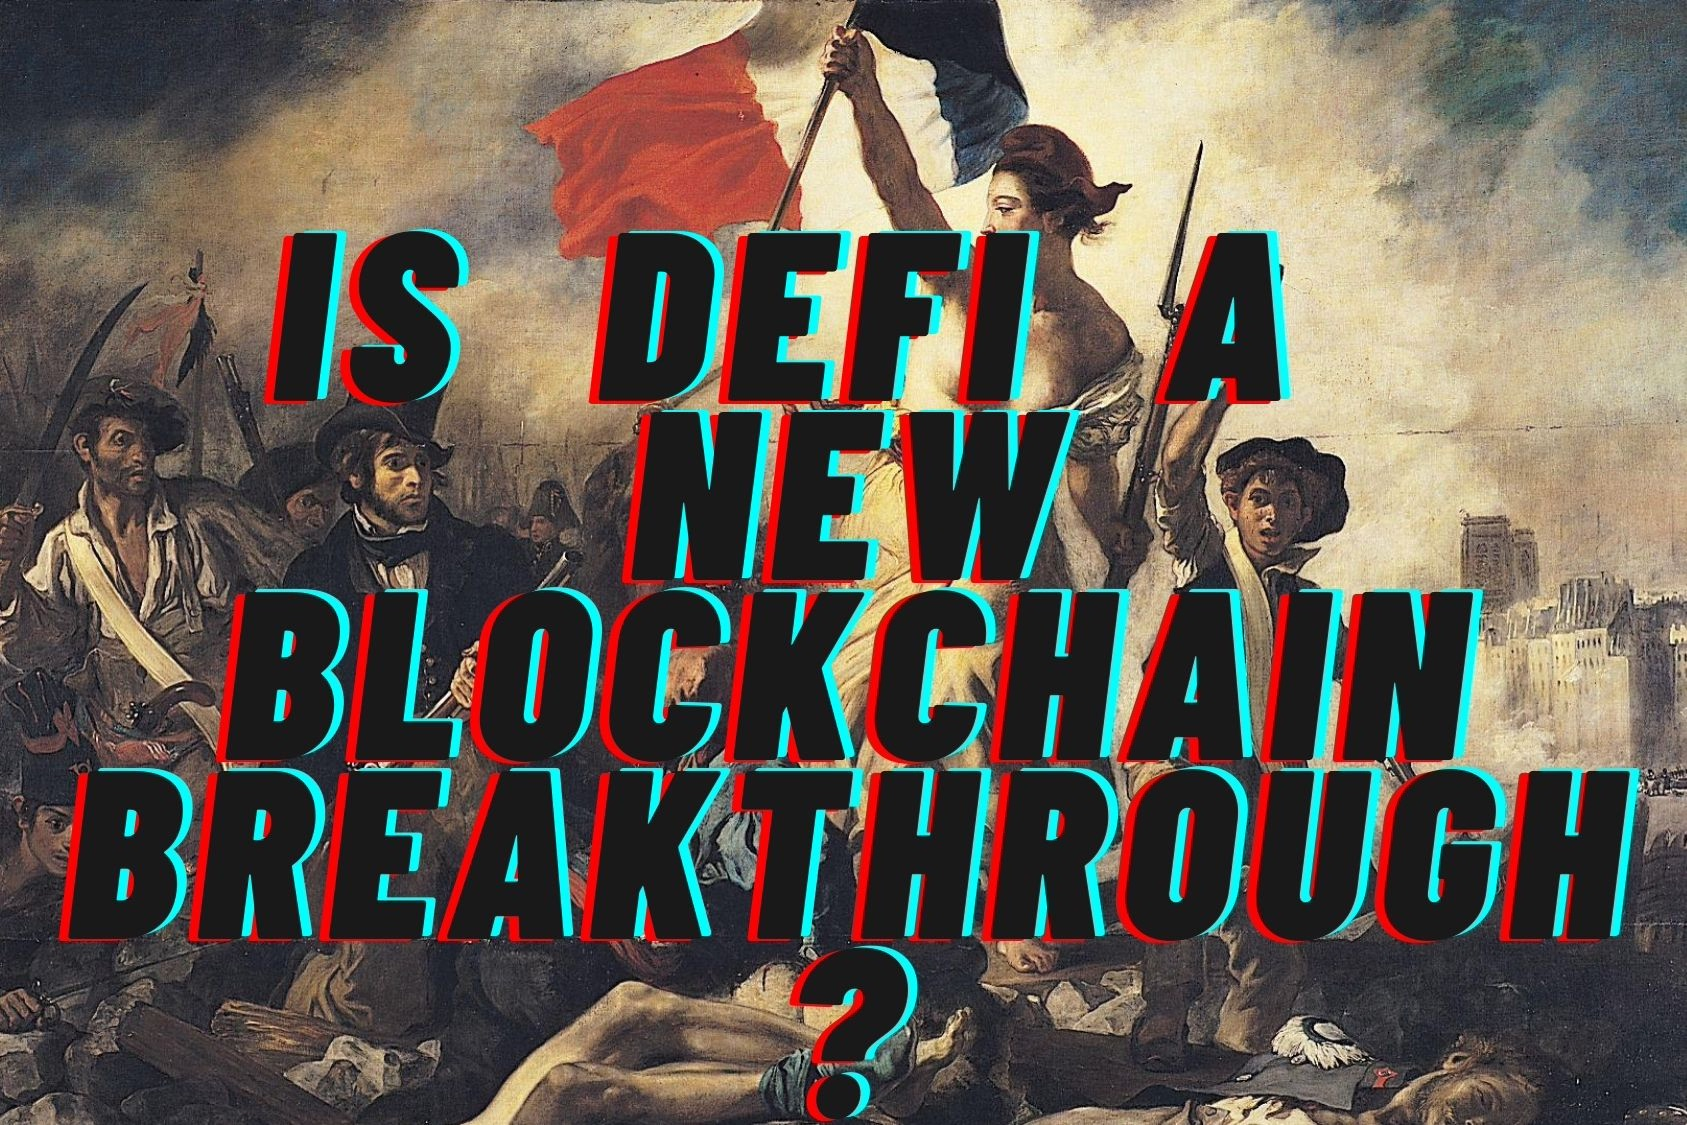 /is-defi-a-breakthrough-for-the-blockchain-industry-bu4m3uv3 feature image